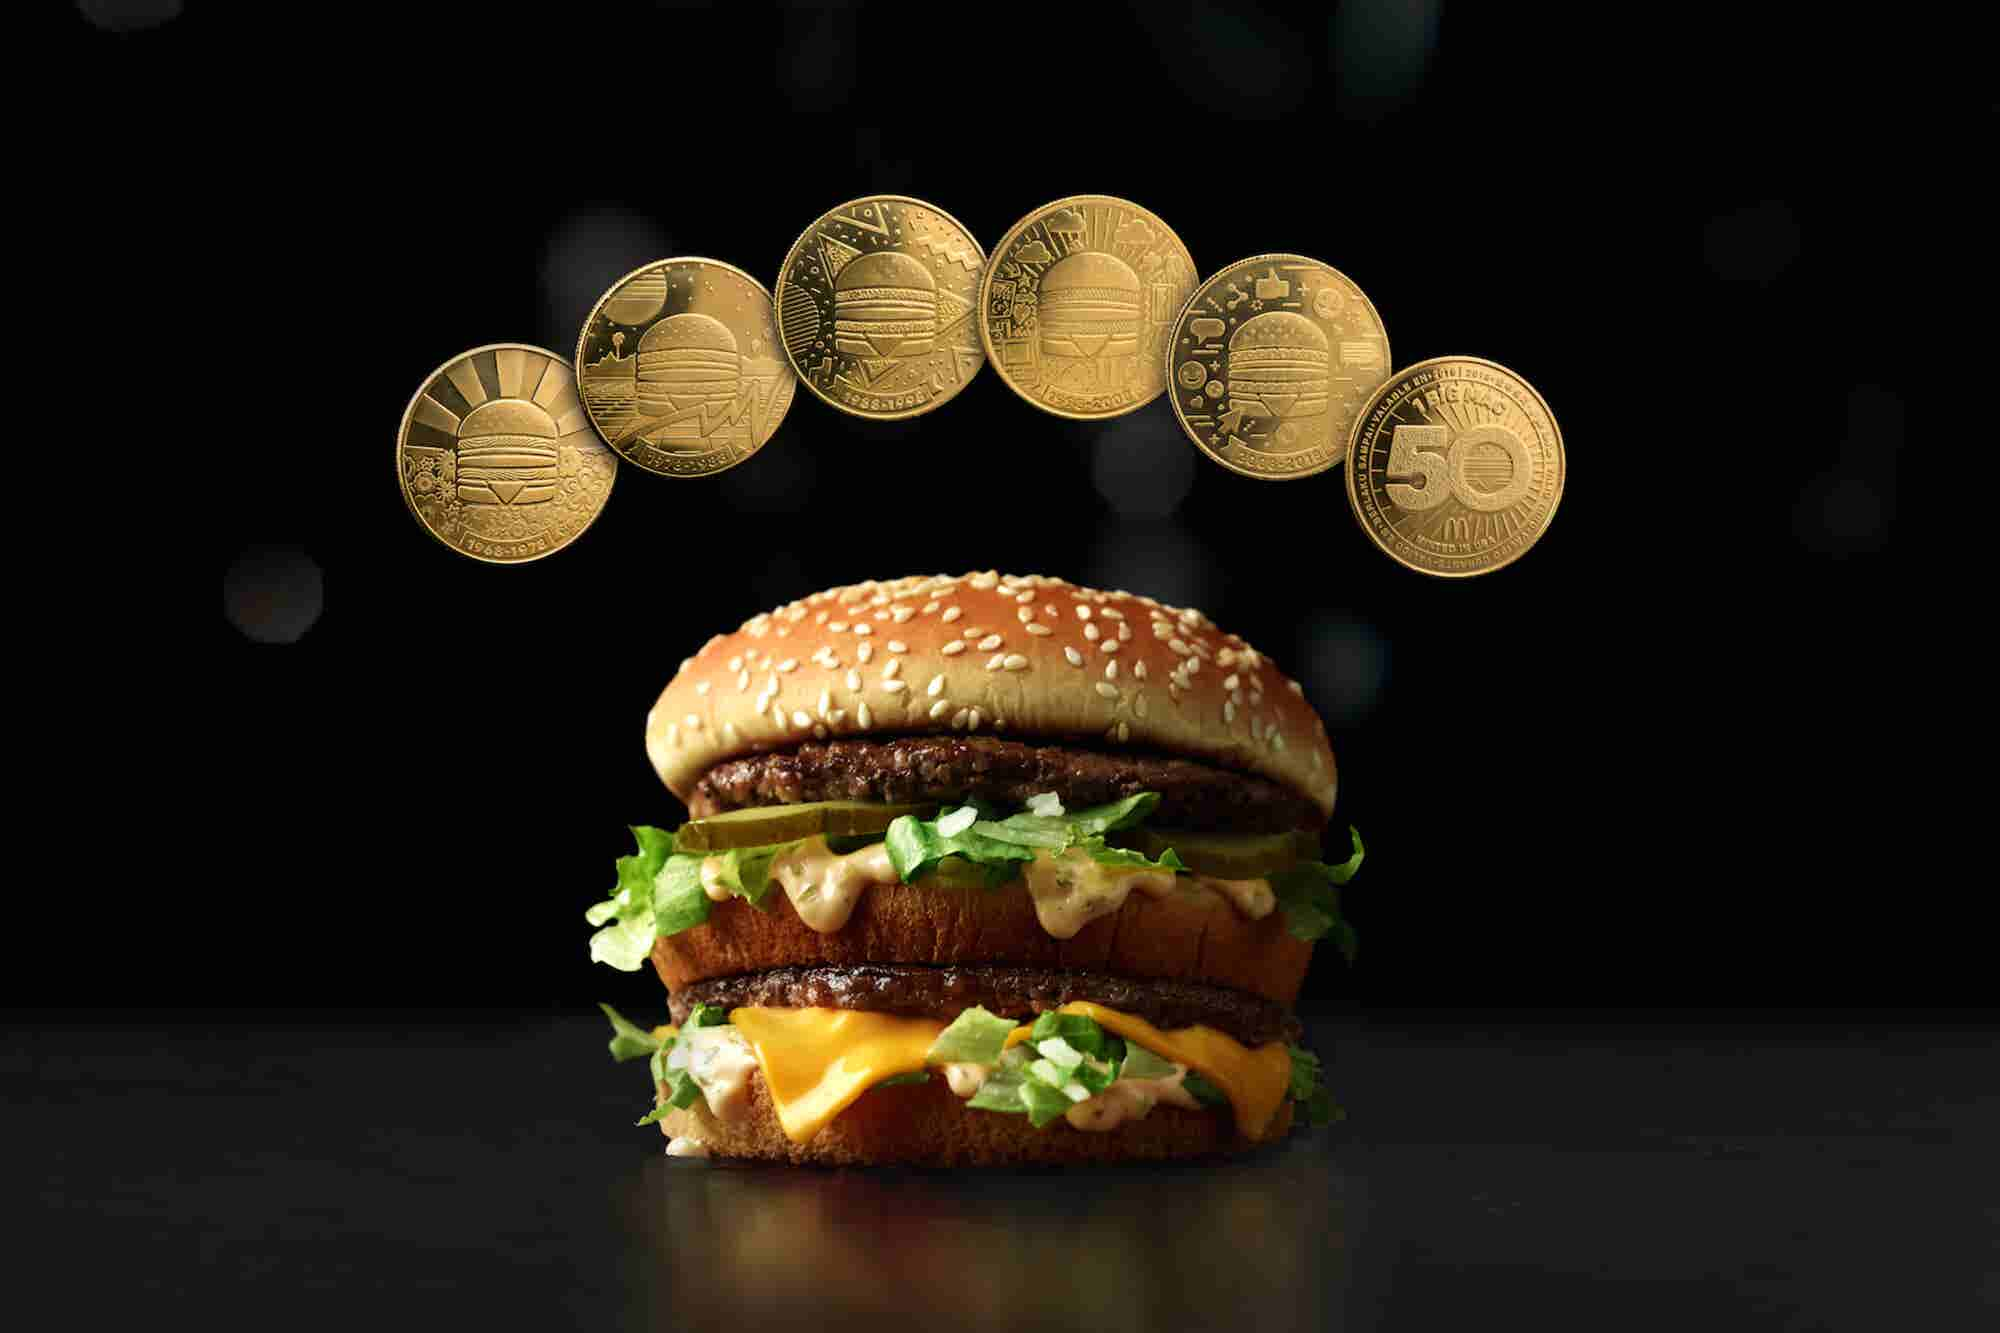 McDonald's Launches MacCoin. 3 Things to Know Today.